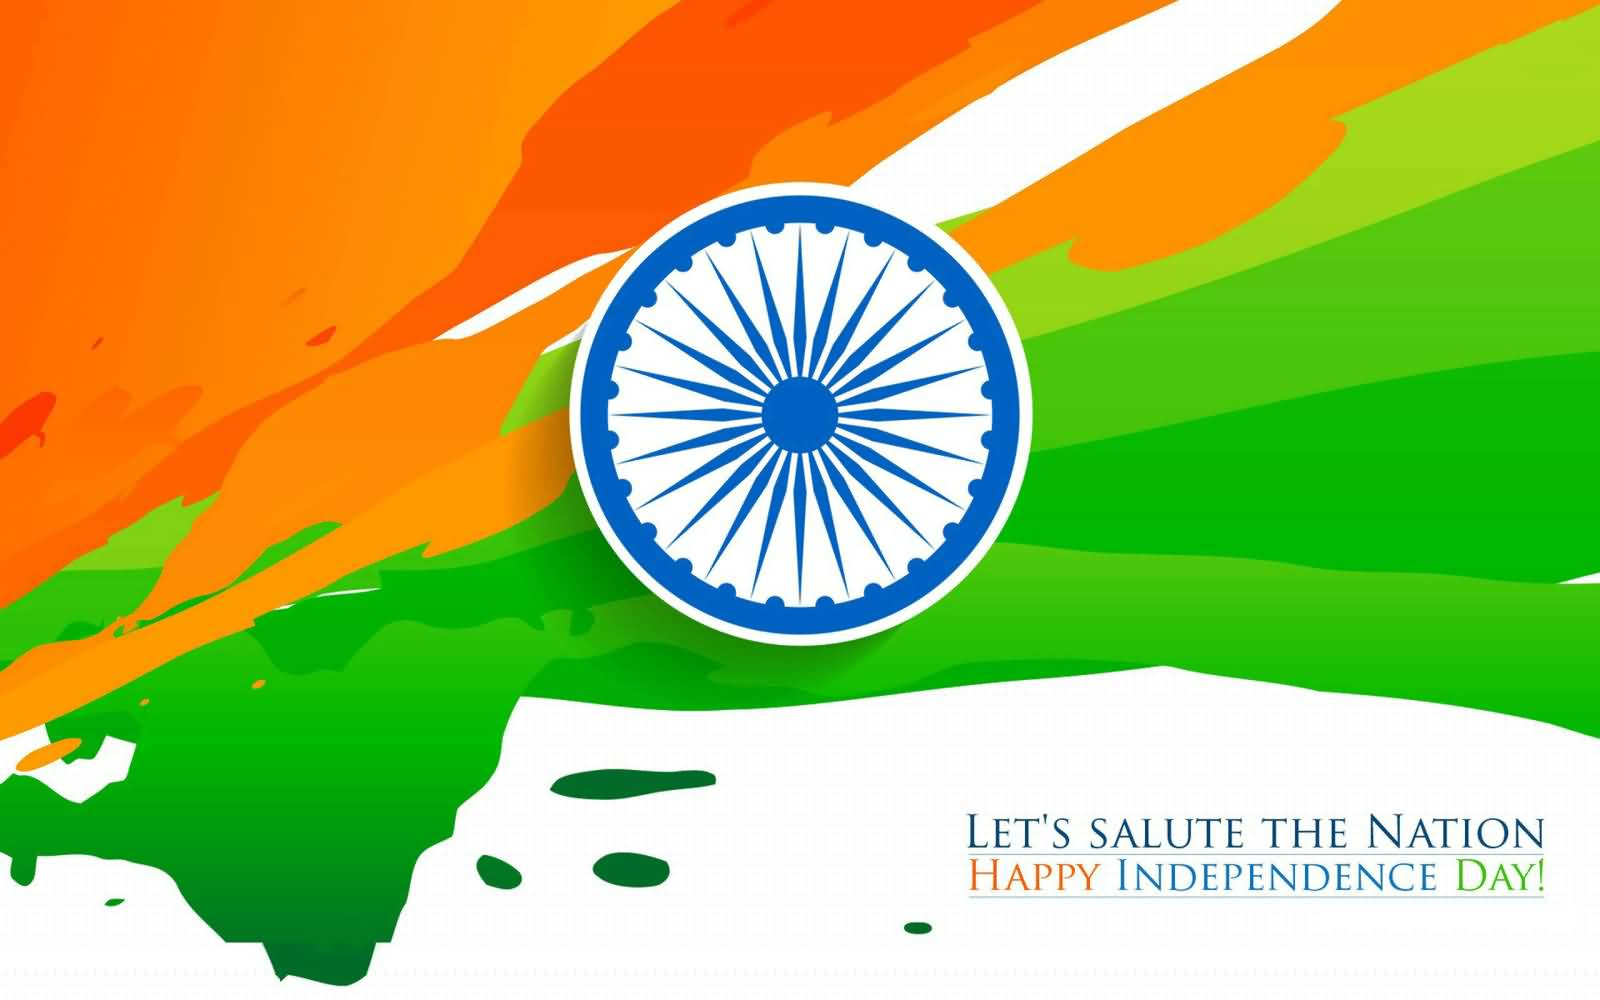 60 most beautiful greeting pictures of independence day of india lets salute the nation happy independence day india wishes wallpaper kristyandbryce Gallery